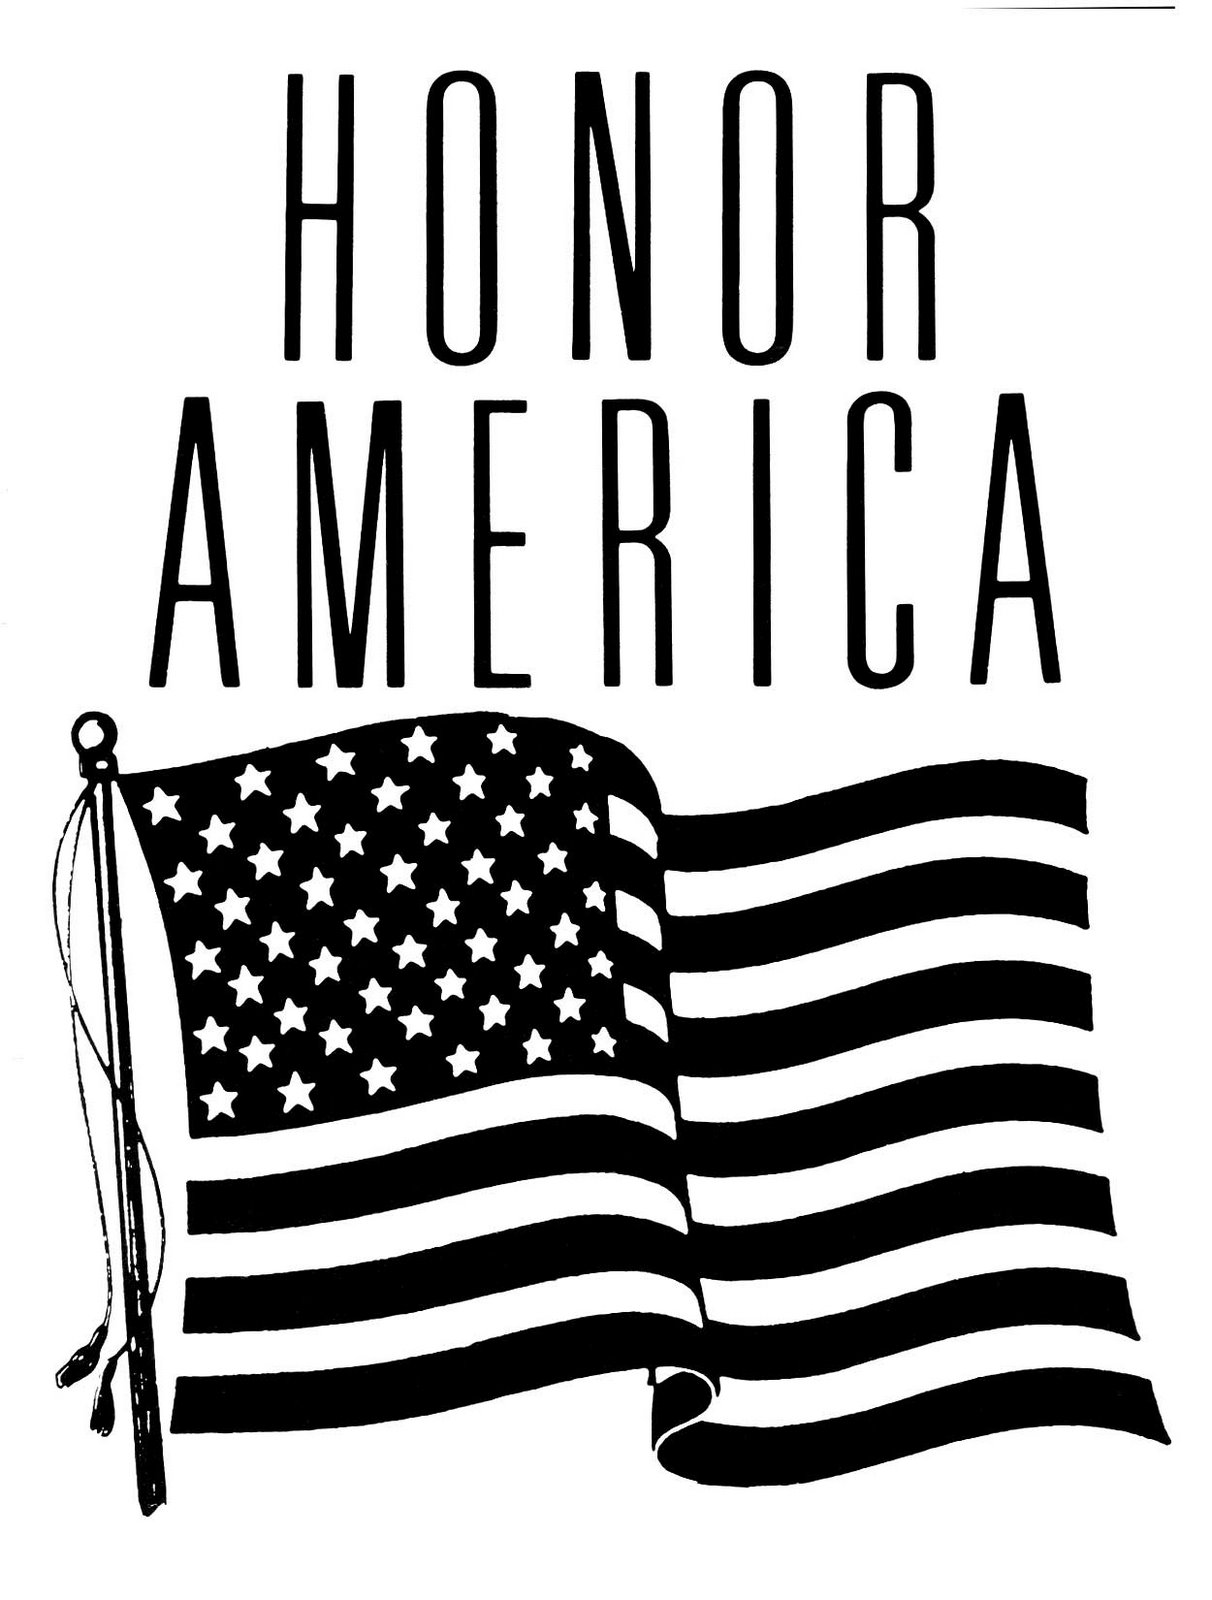 American Flag clipart black and white Cliparting photos white clipart black